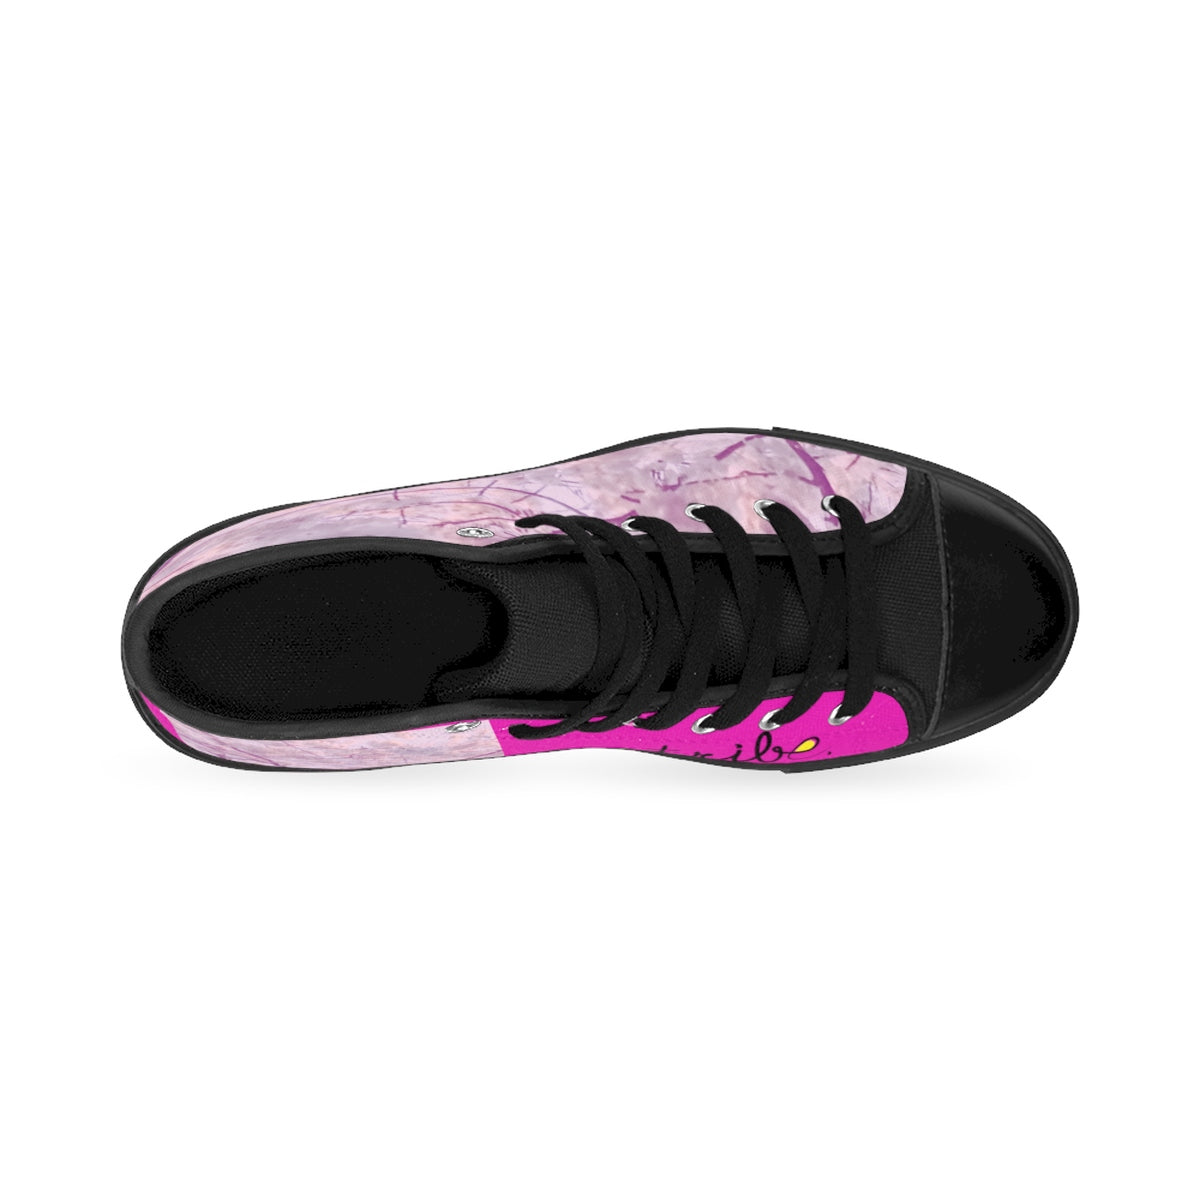 Women's High-top Sneakers